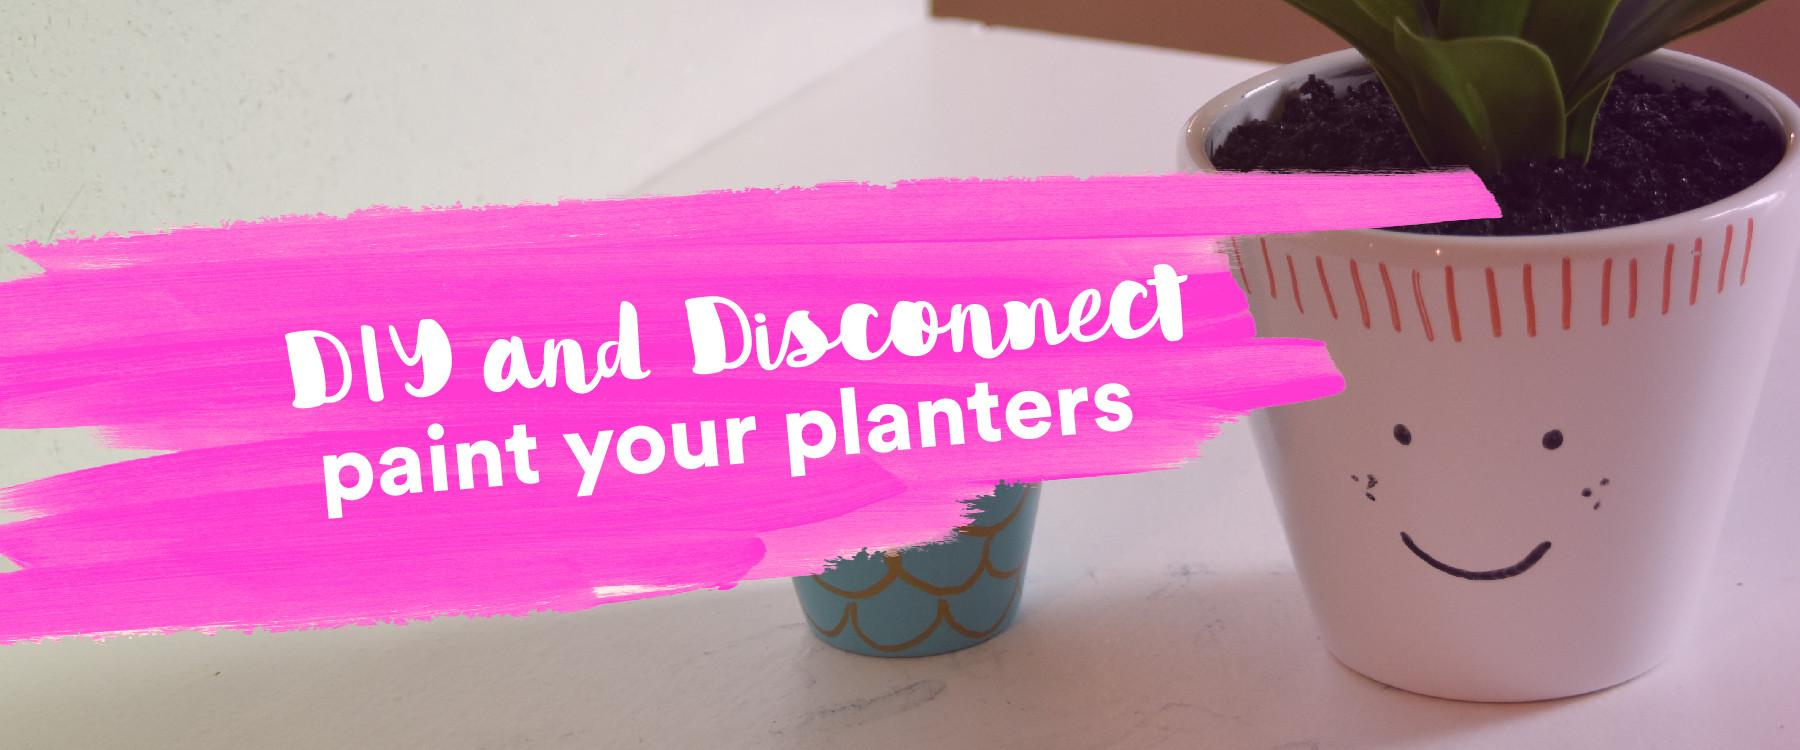 Diy Disconnect Paint Your Planters More Than Buzz